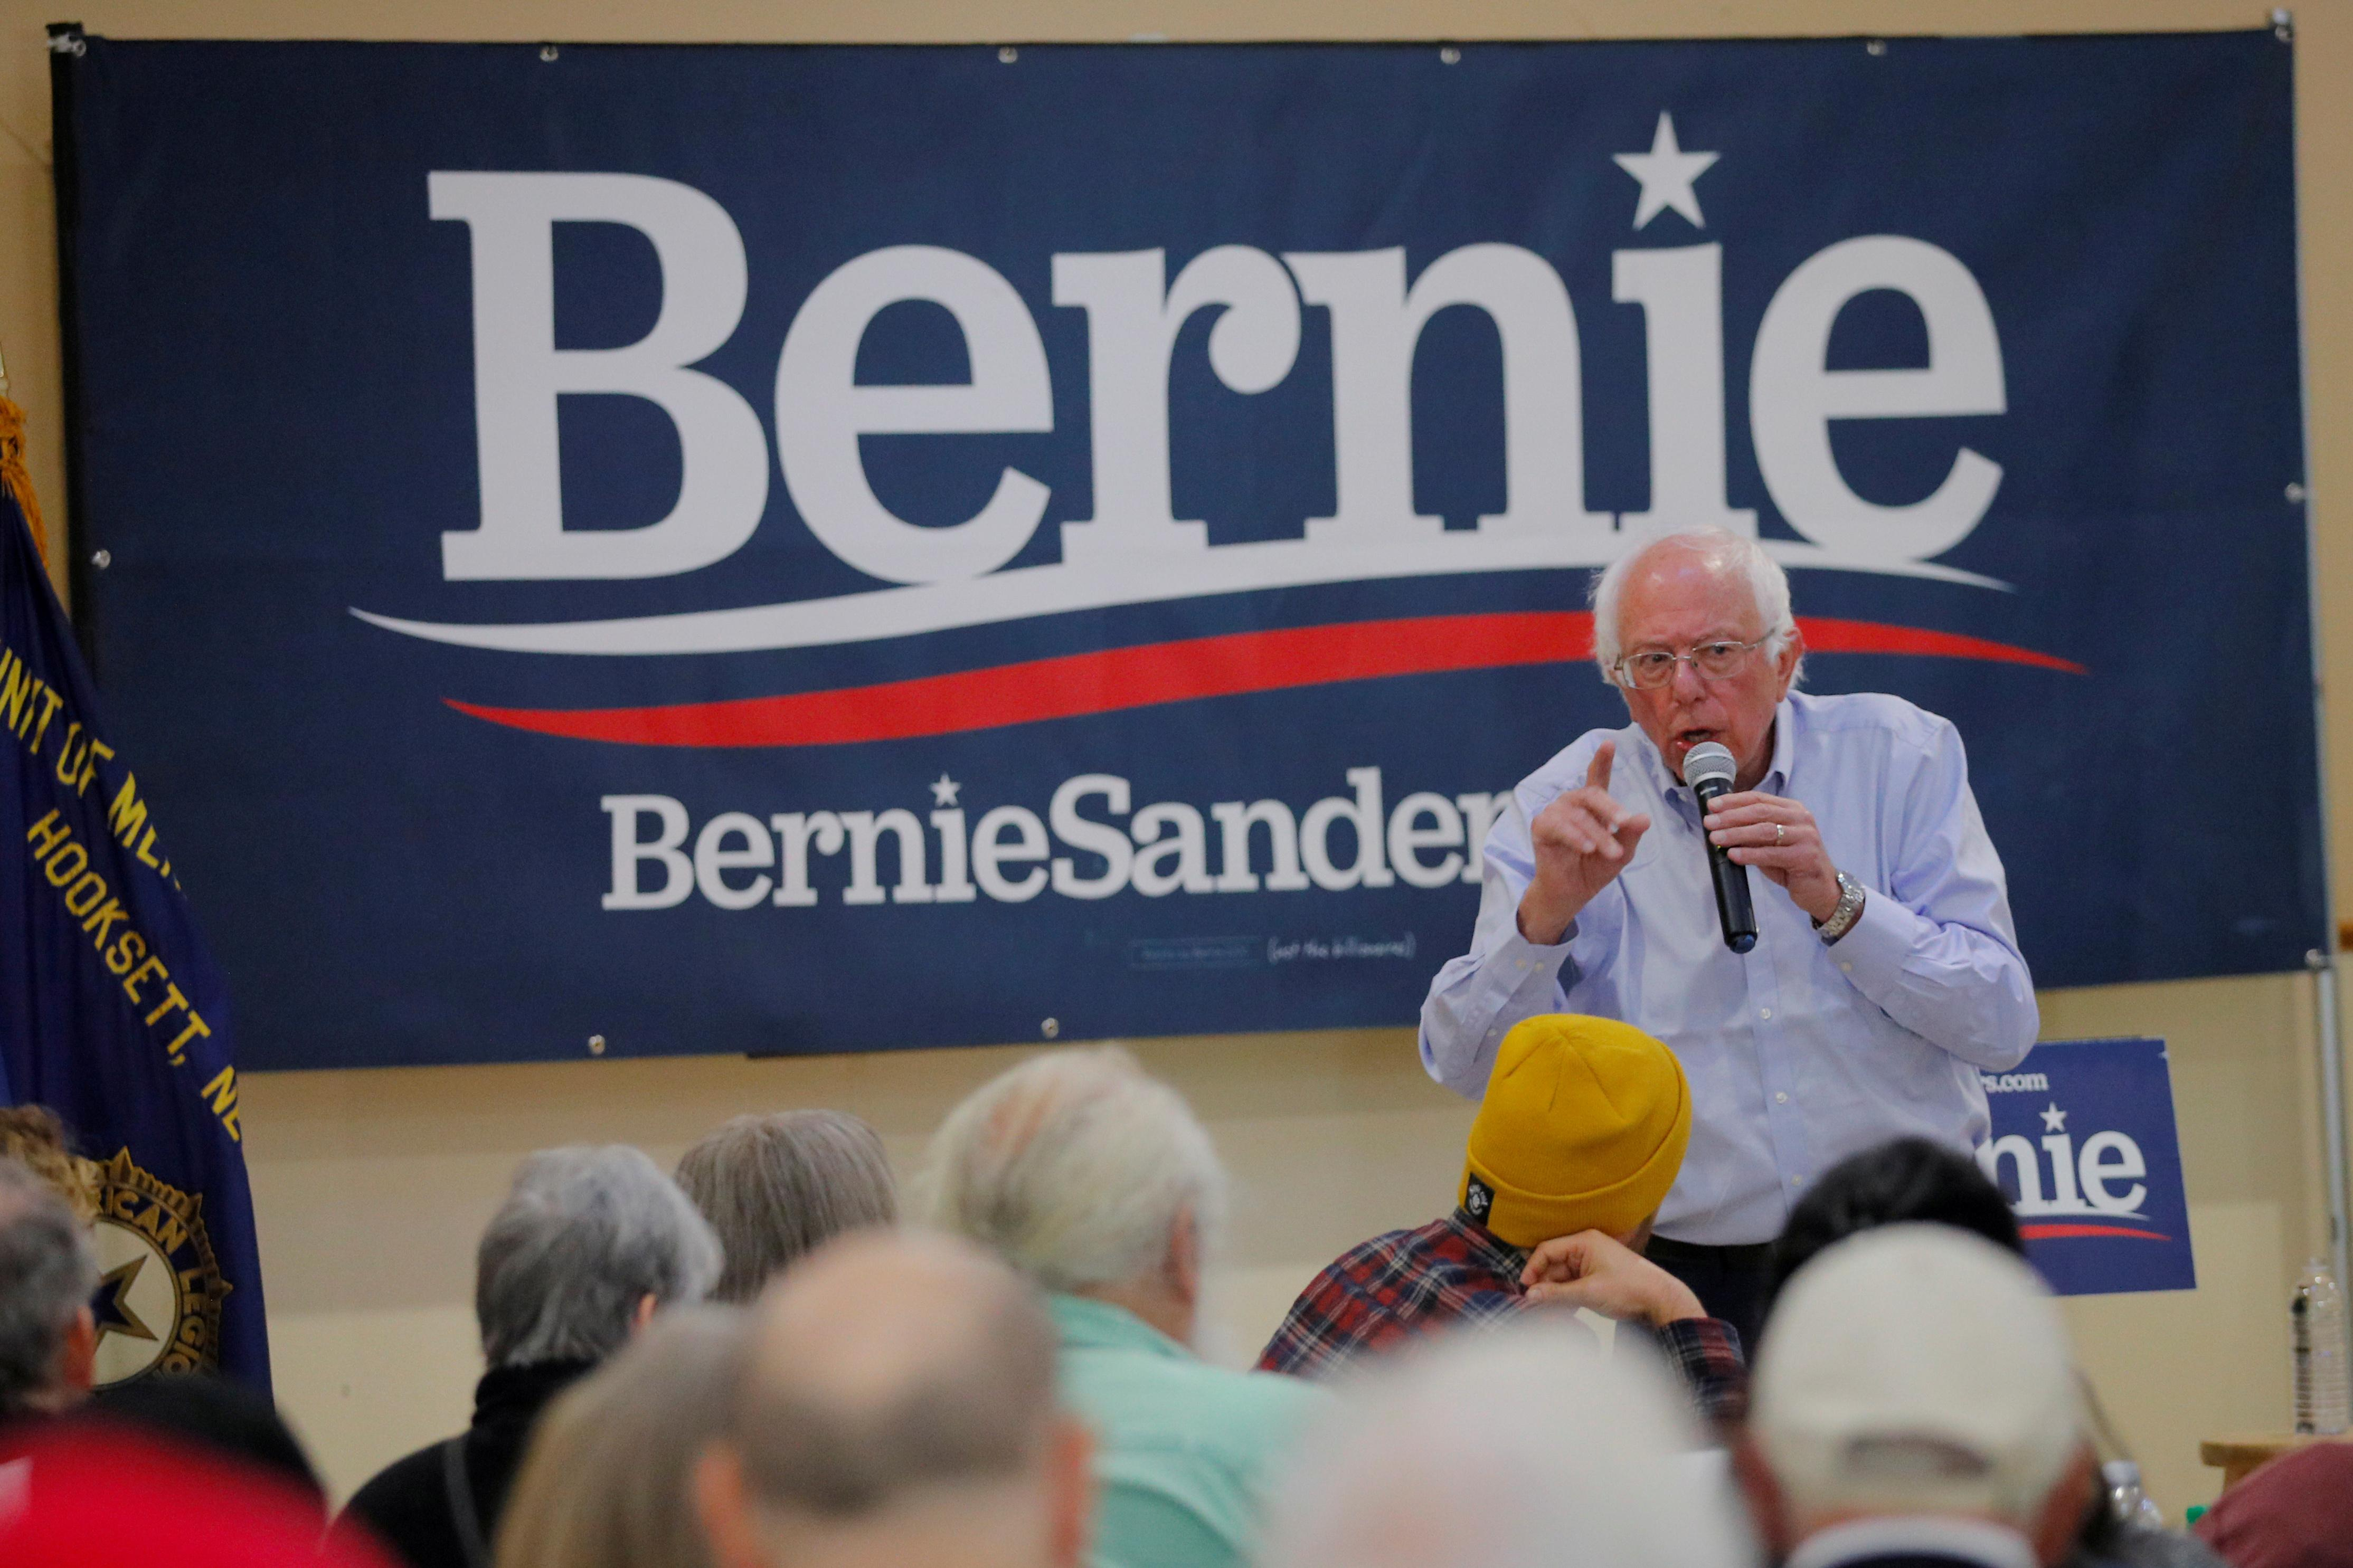 Bernie Sanders draws thousands to rally in New York in comeback...